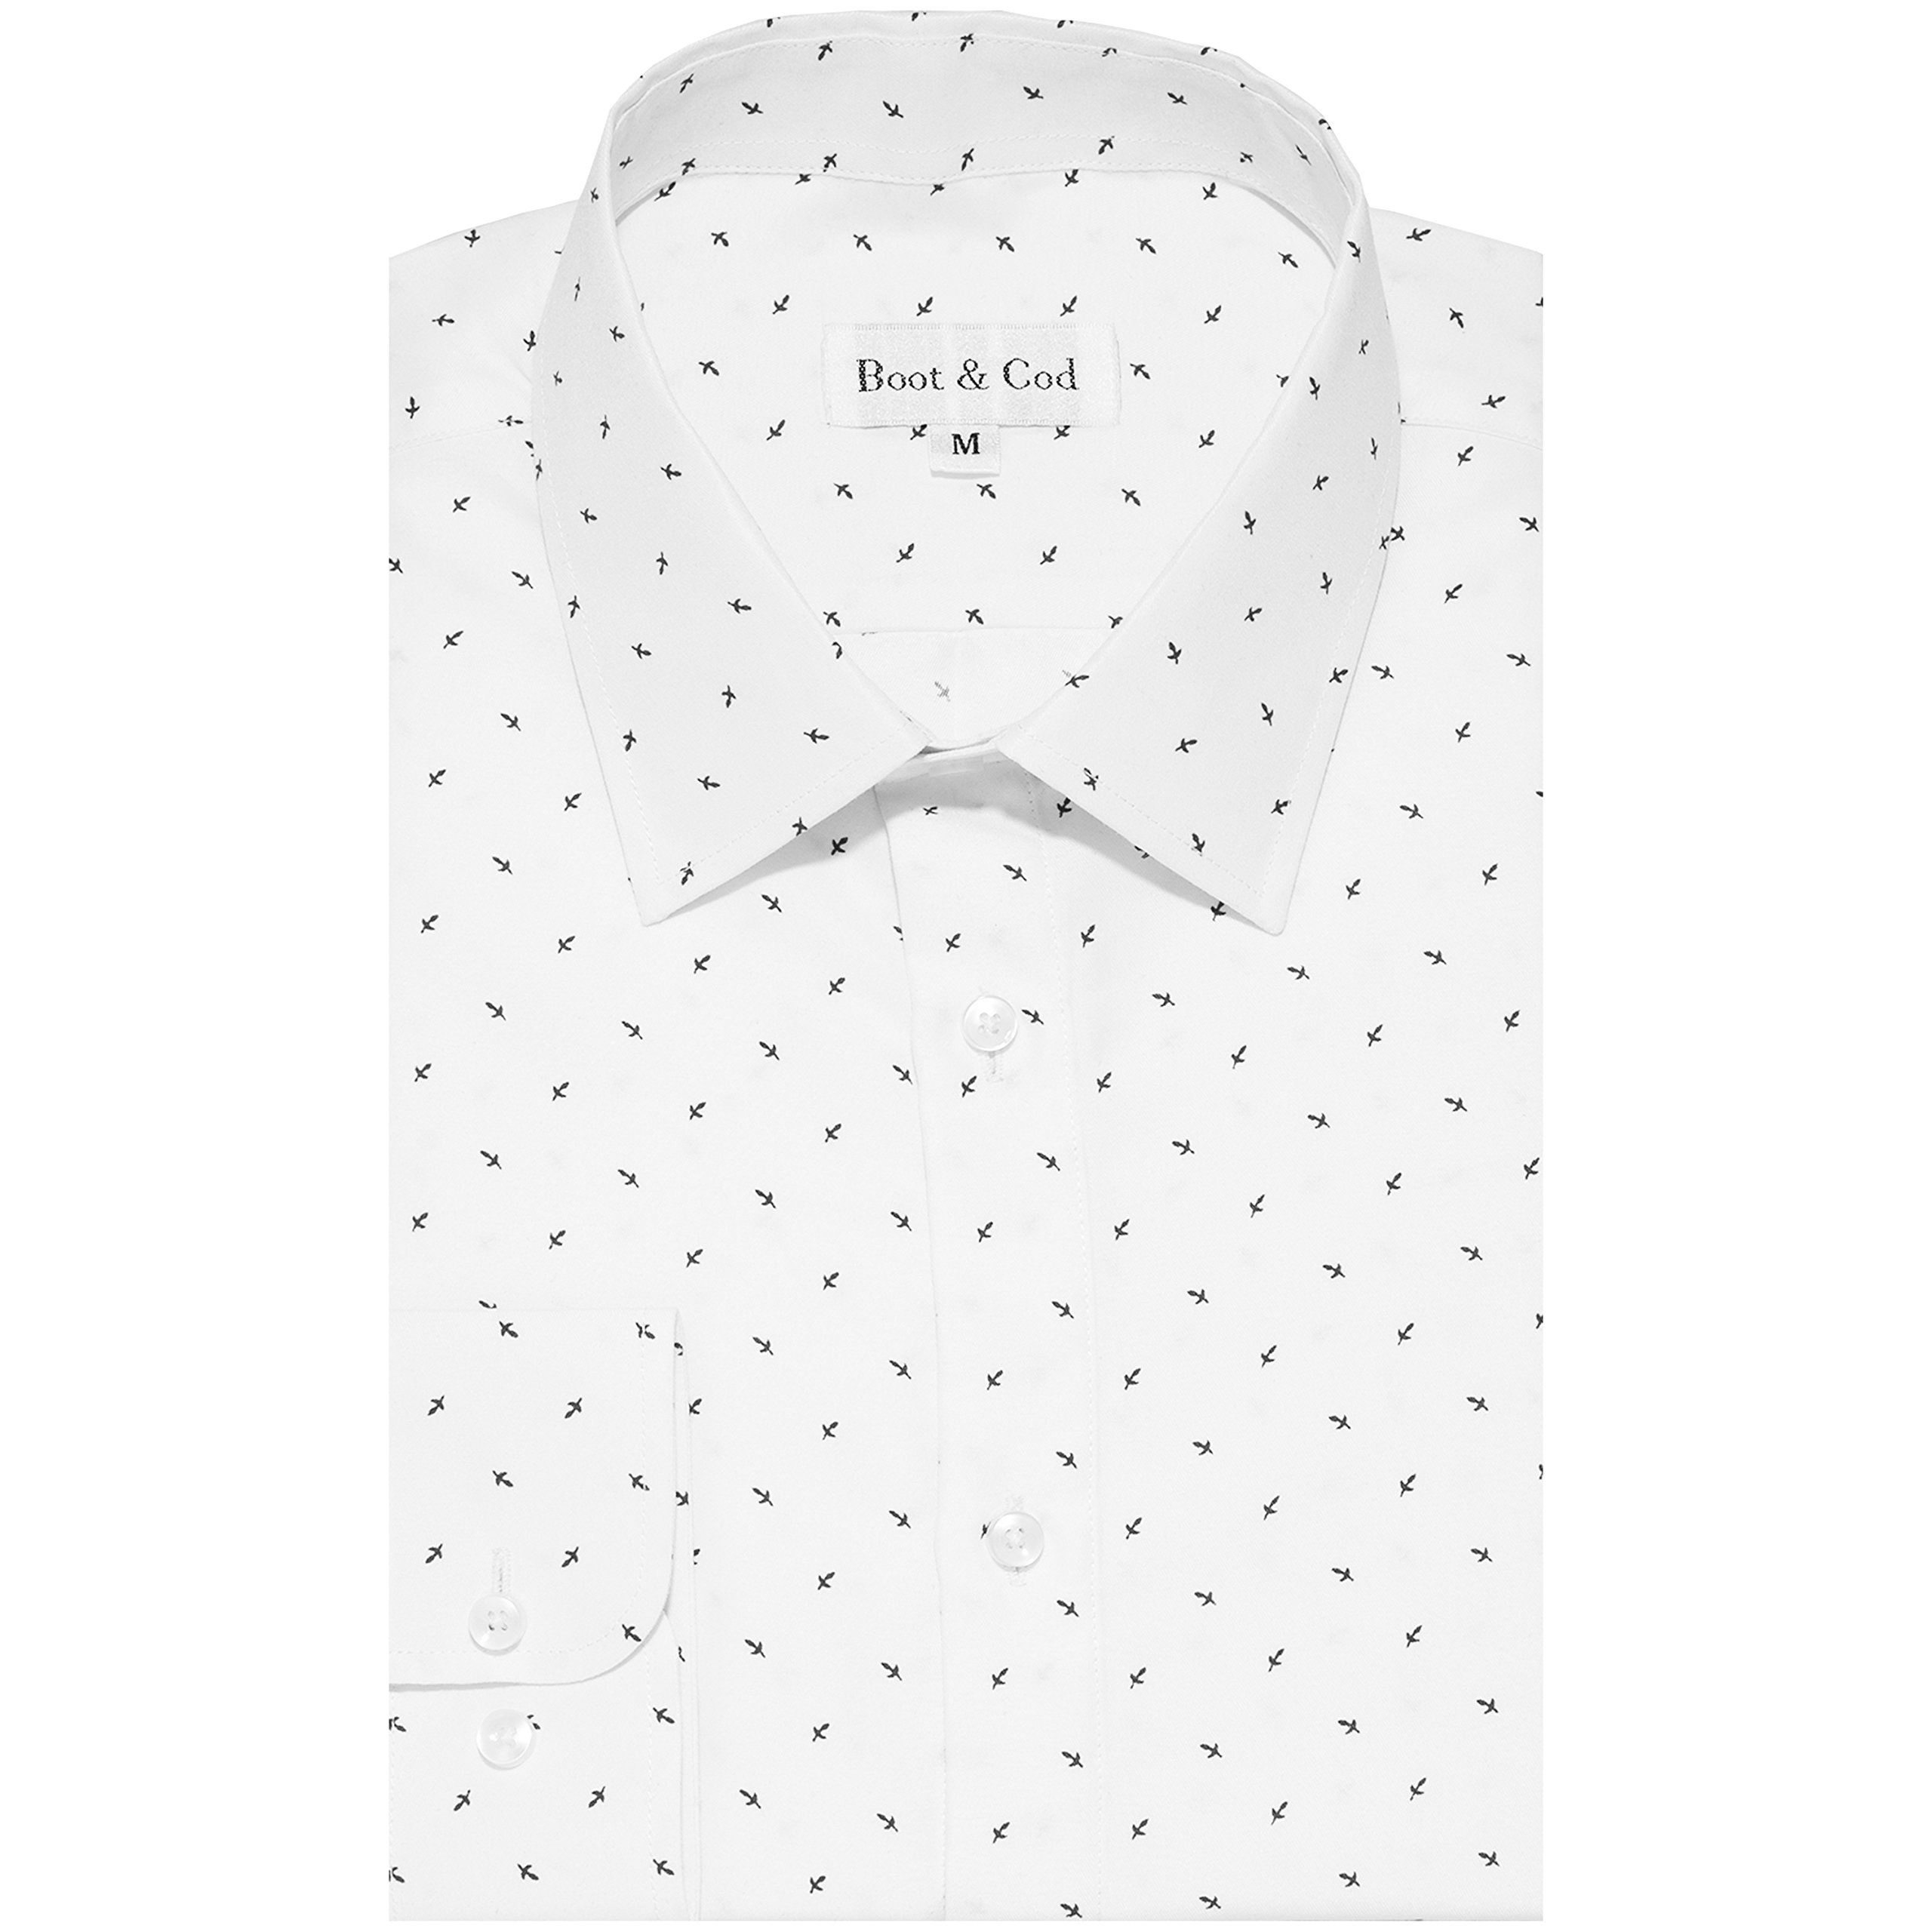 Boot & Cod Men's Shirts - Patterned Fitted Long Sleeve Button Down Dress Shirt for Men - 4'' Semi-Spread Collar, Tapered Sleeves, Slim Fit, Single-Barrel Rounded Cuffs X-Small